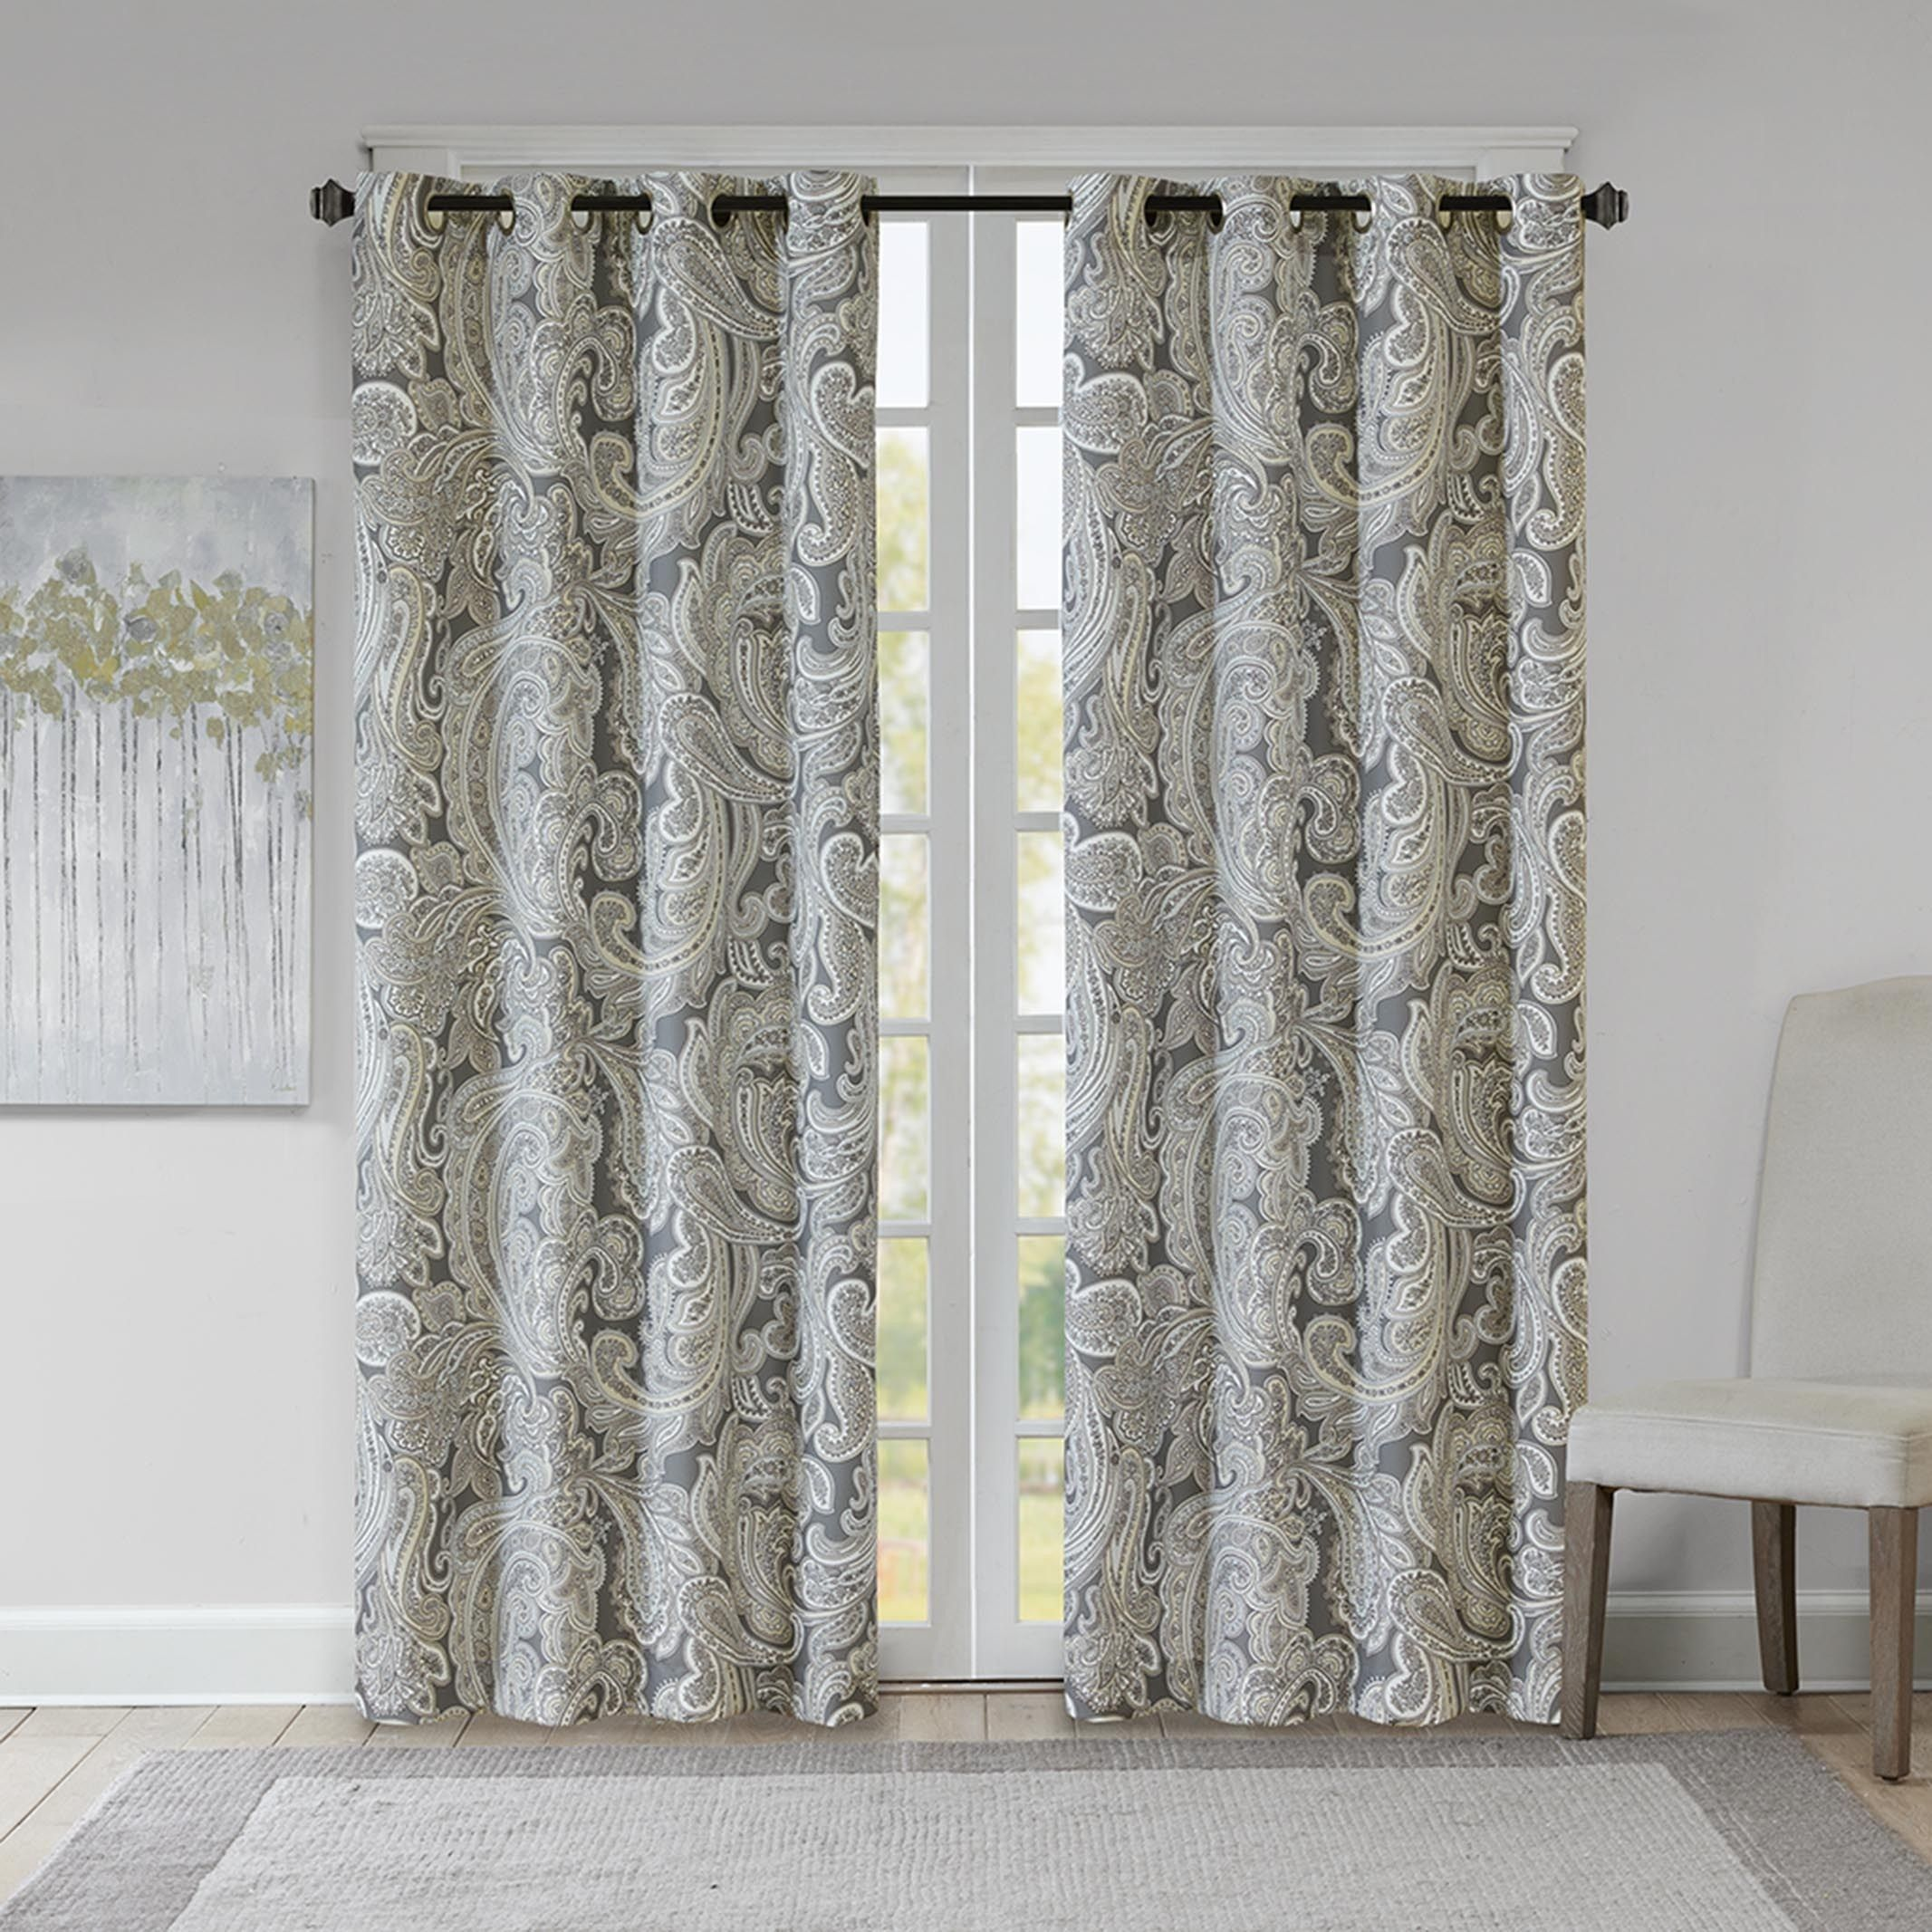 photos gallery digest curtains trend decorate how with paisley to curtain architectural